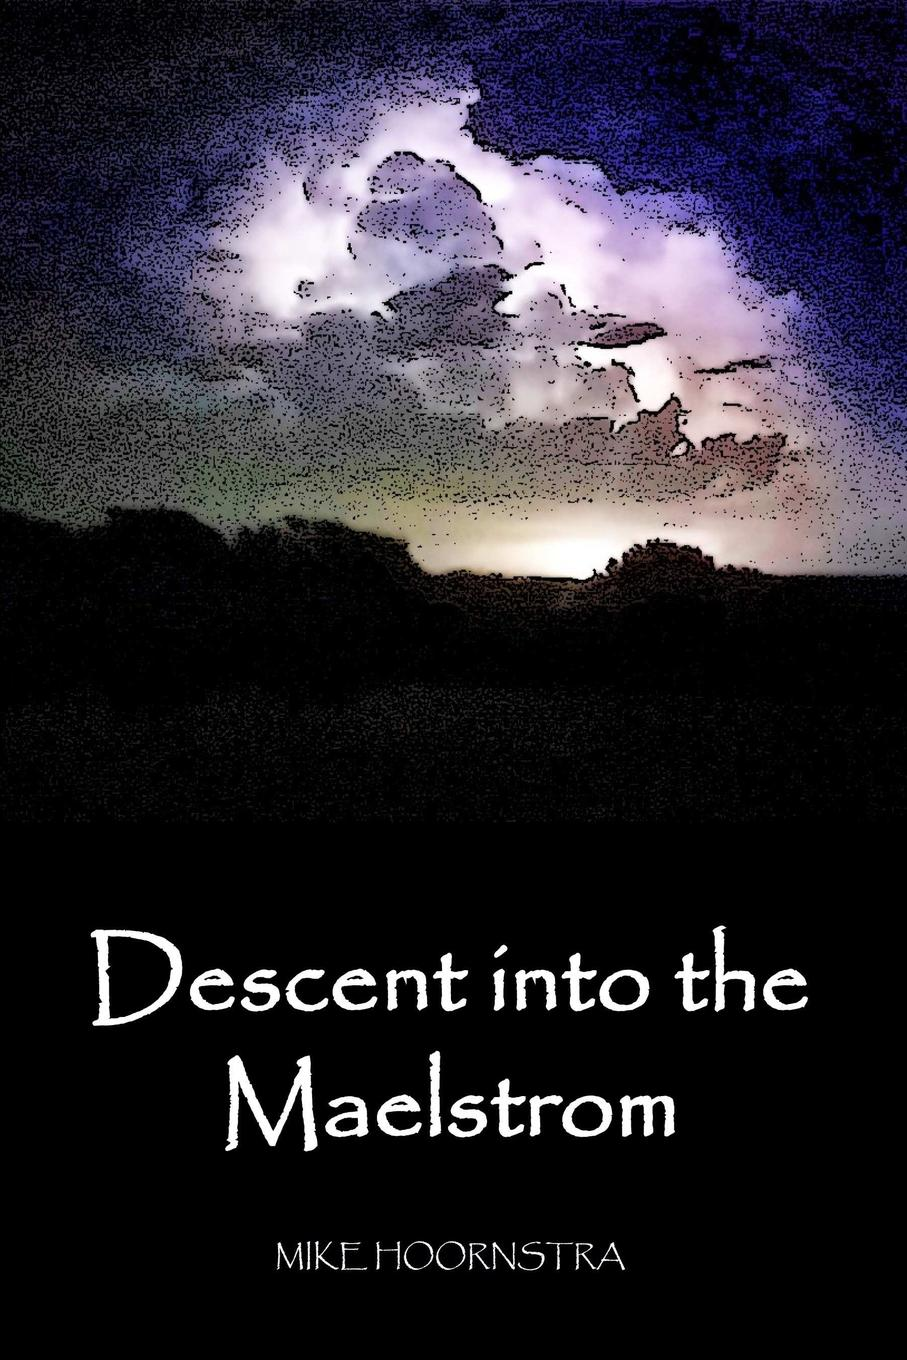 Mike Hoornstra Descent into the Maelstrom tapestry 4 the maelstrom